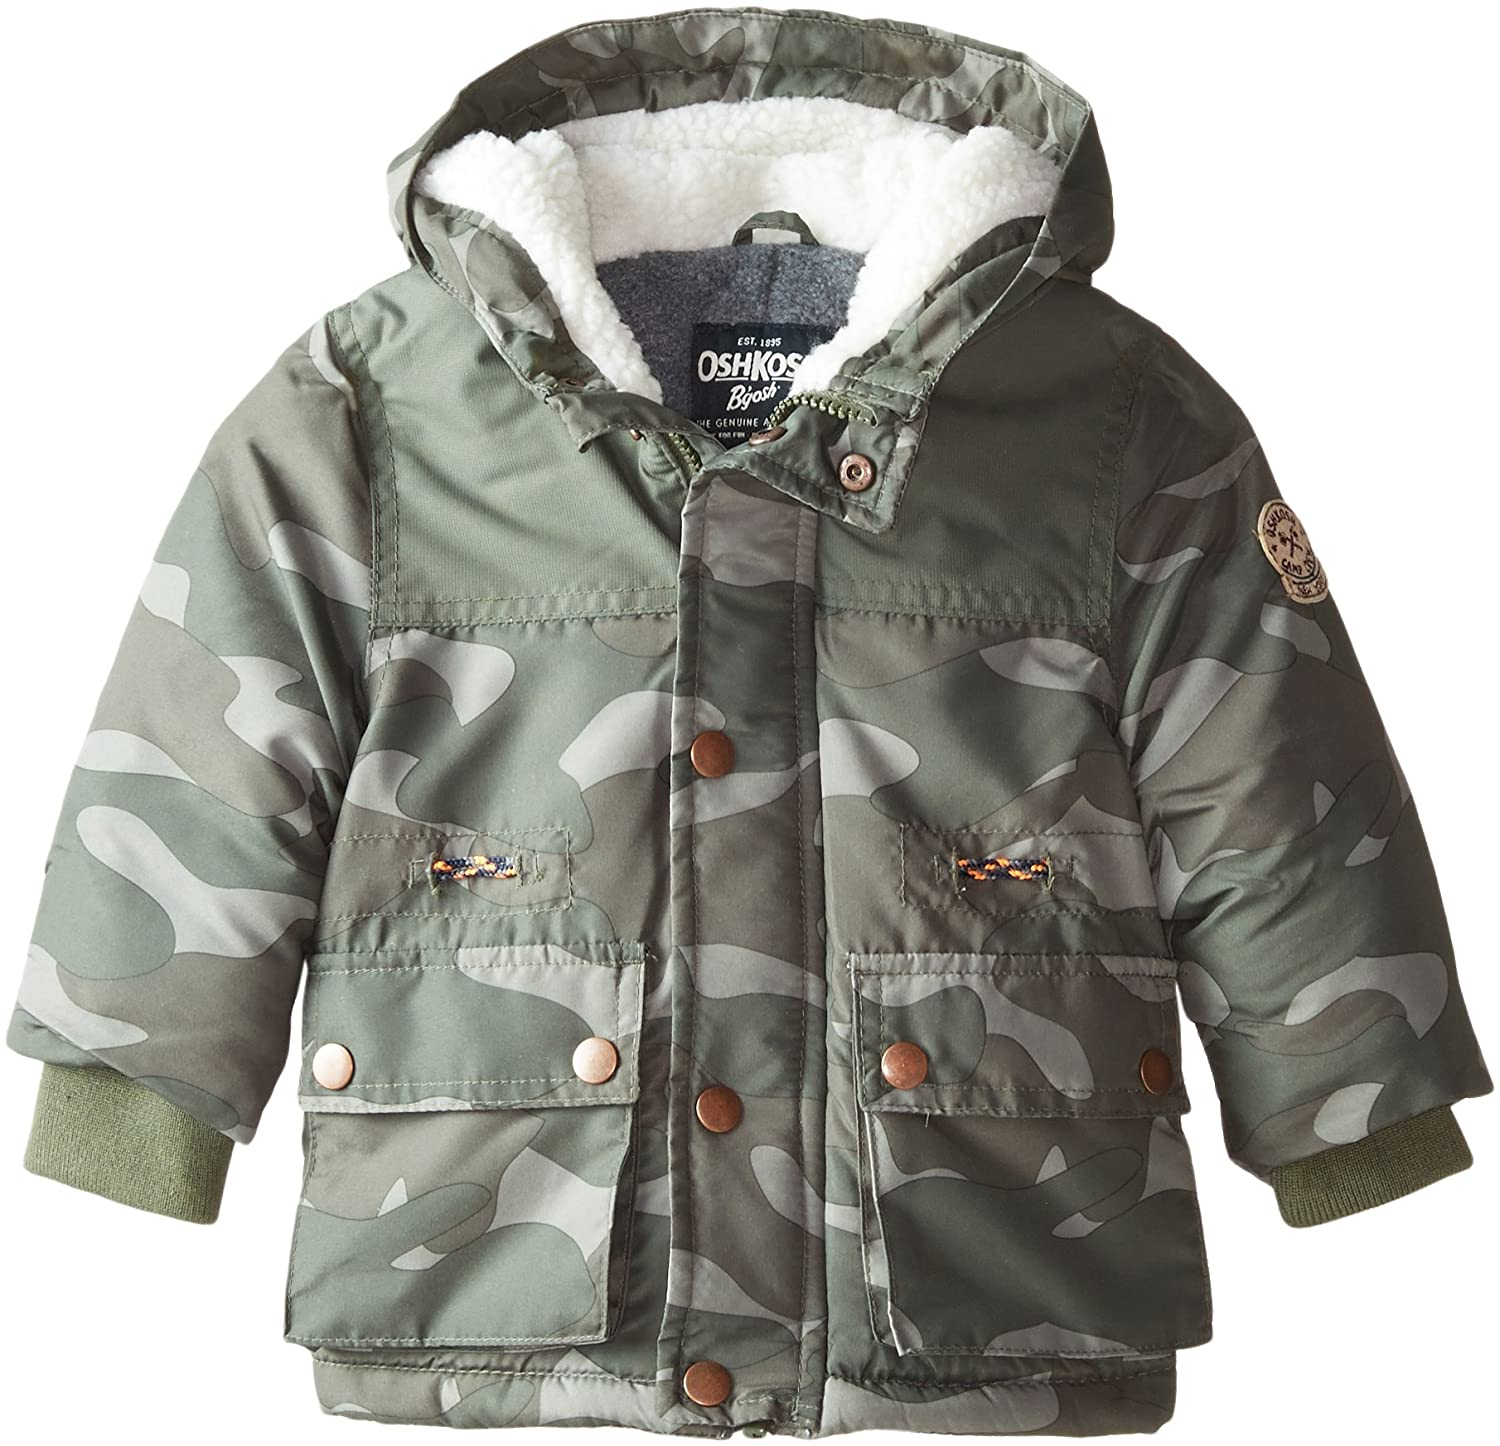 OshKosh Baby Boys Warm Winter Puffer Jacket Coat with Fleece Lined Hood